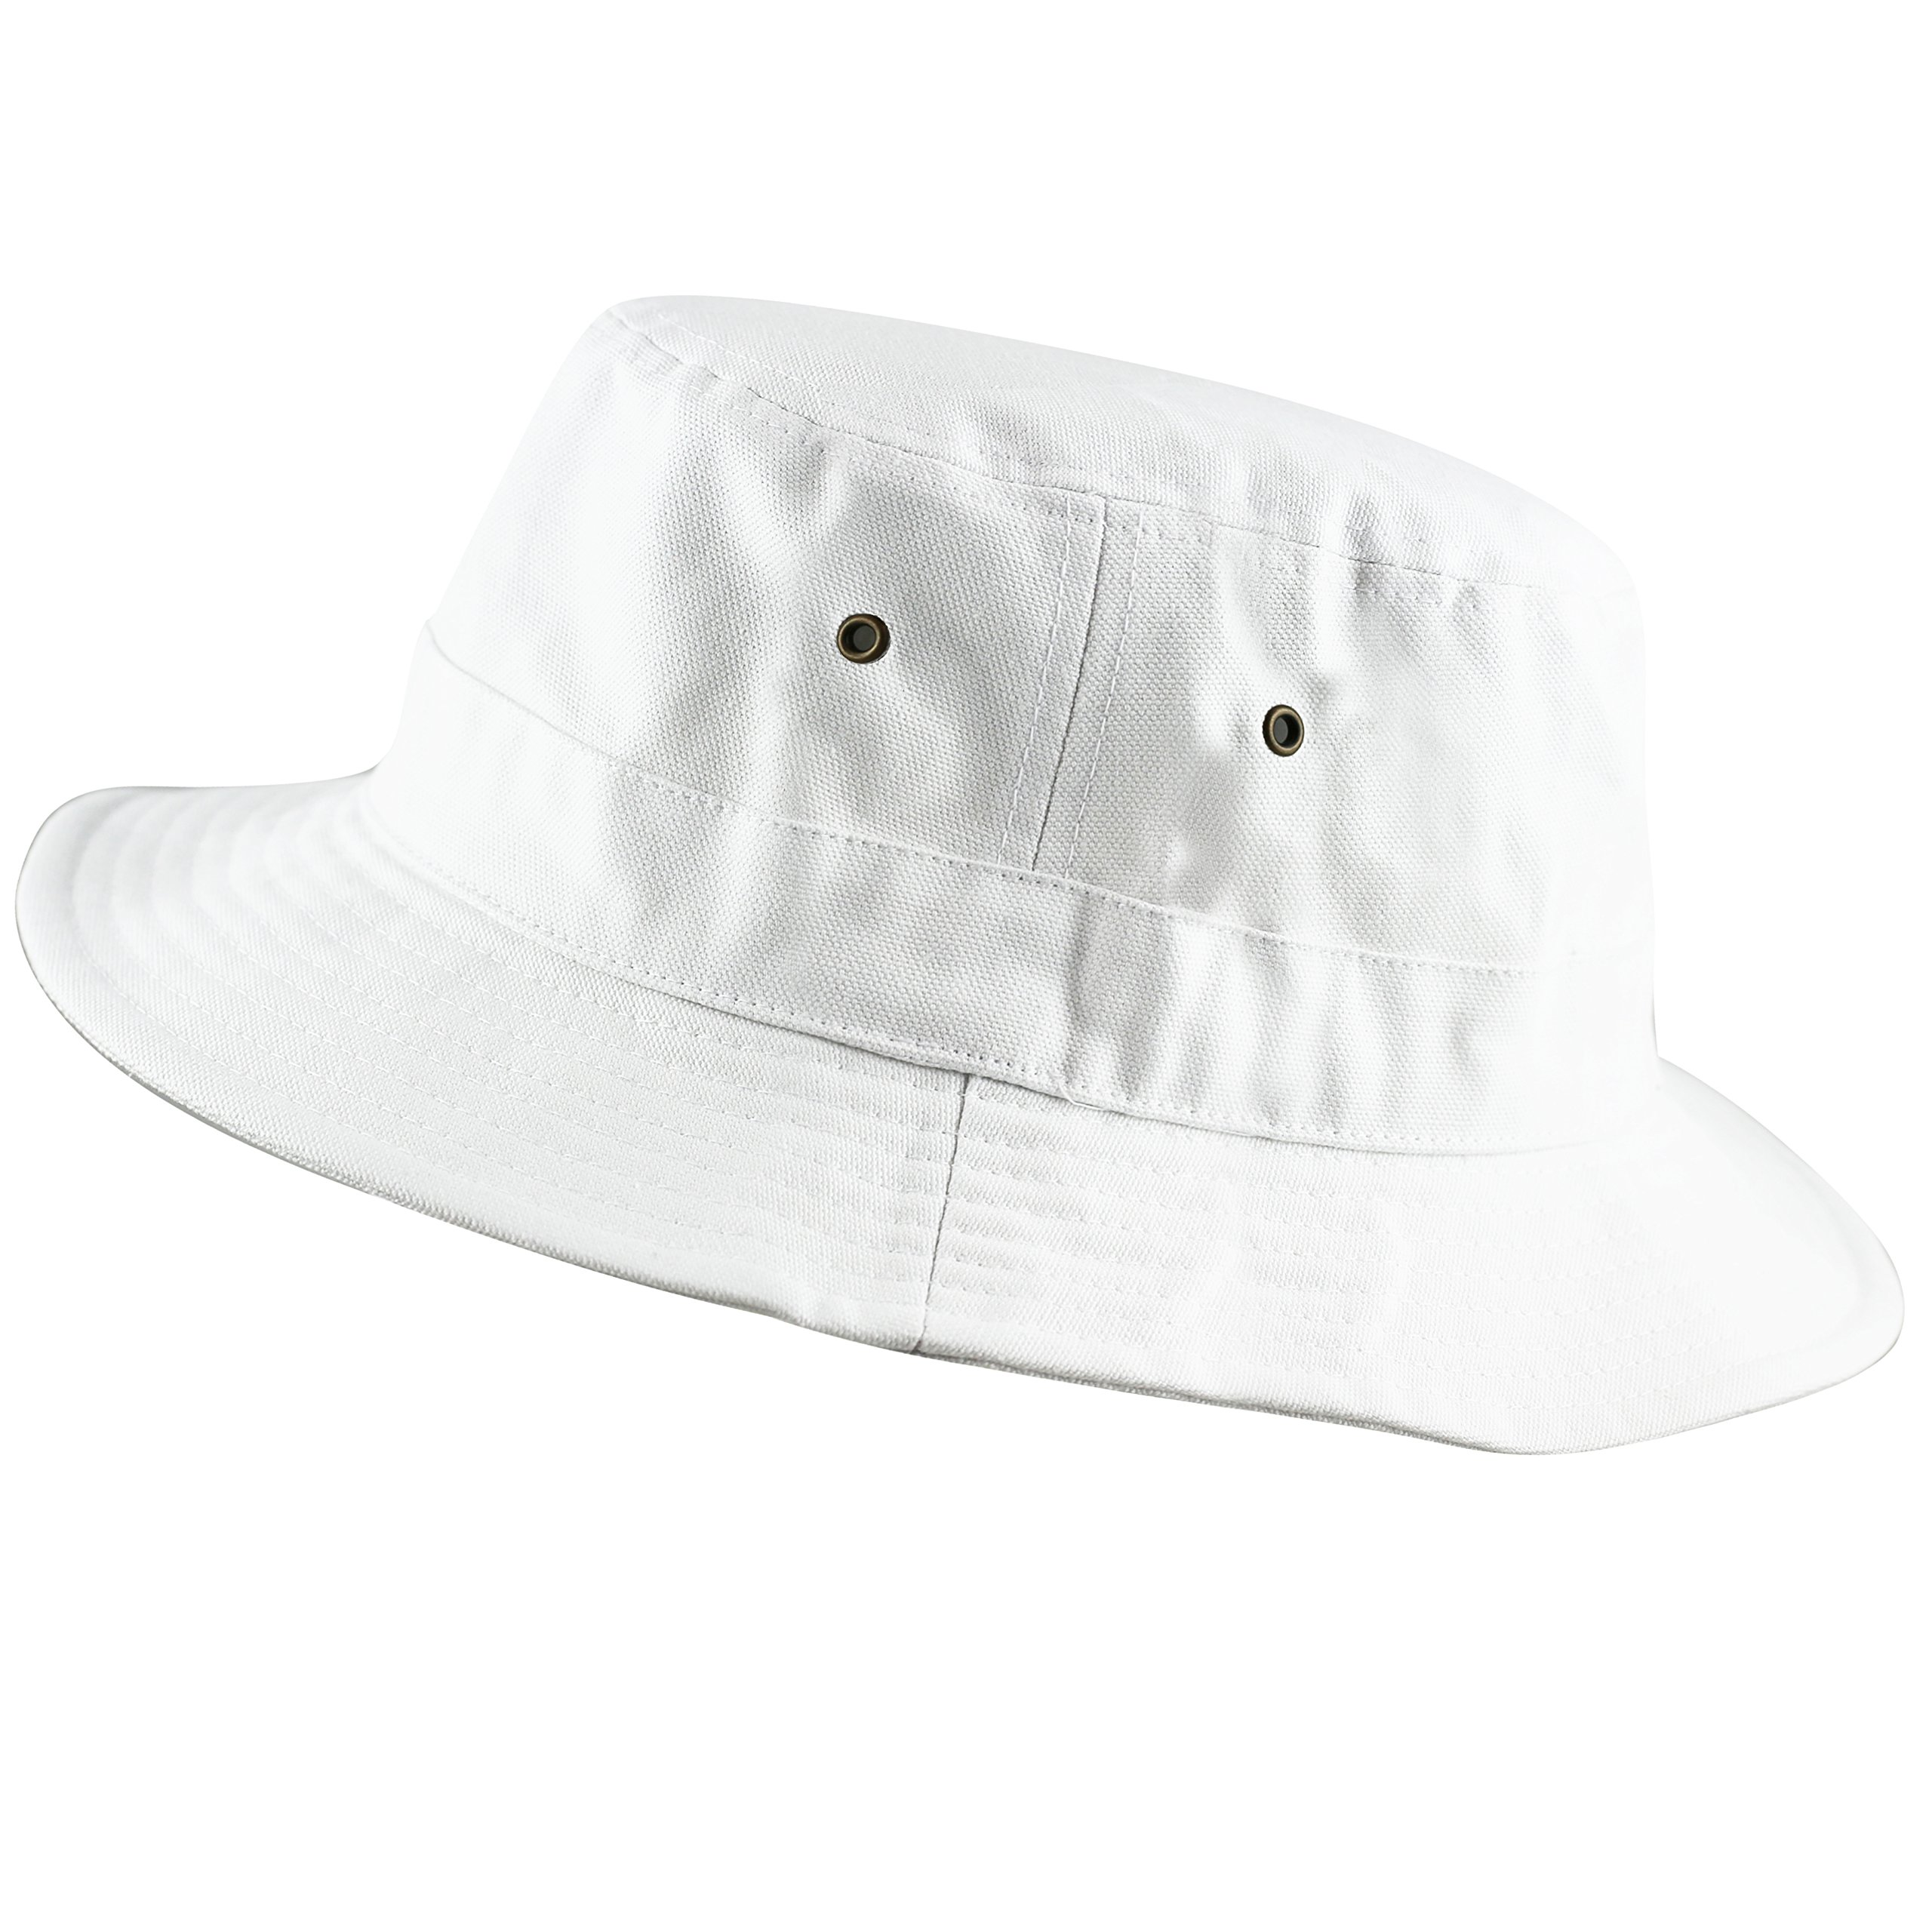 THE HAT DEPOT 100% Cotton Canvas Packable Summer Travel Bucket Hat (S/M, White)